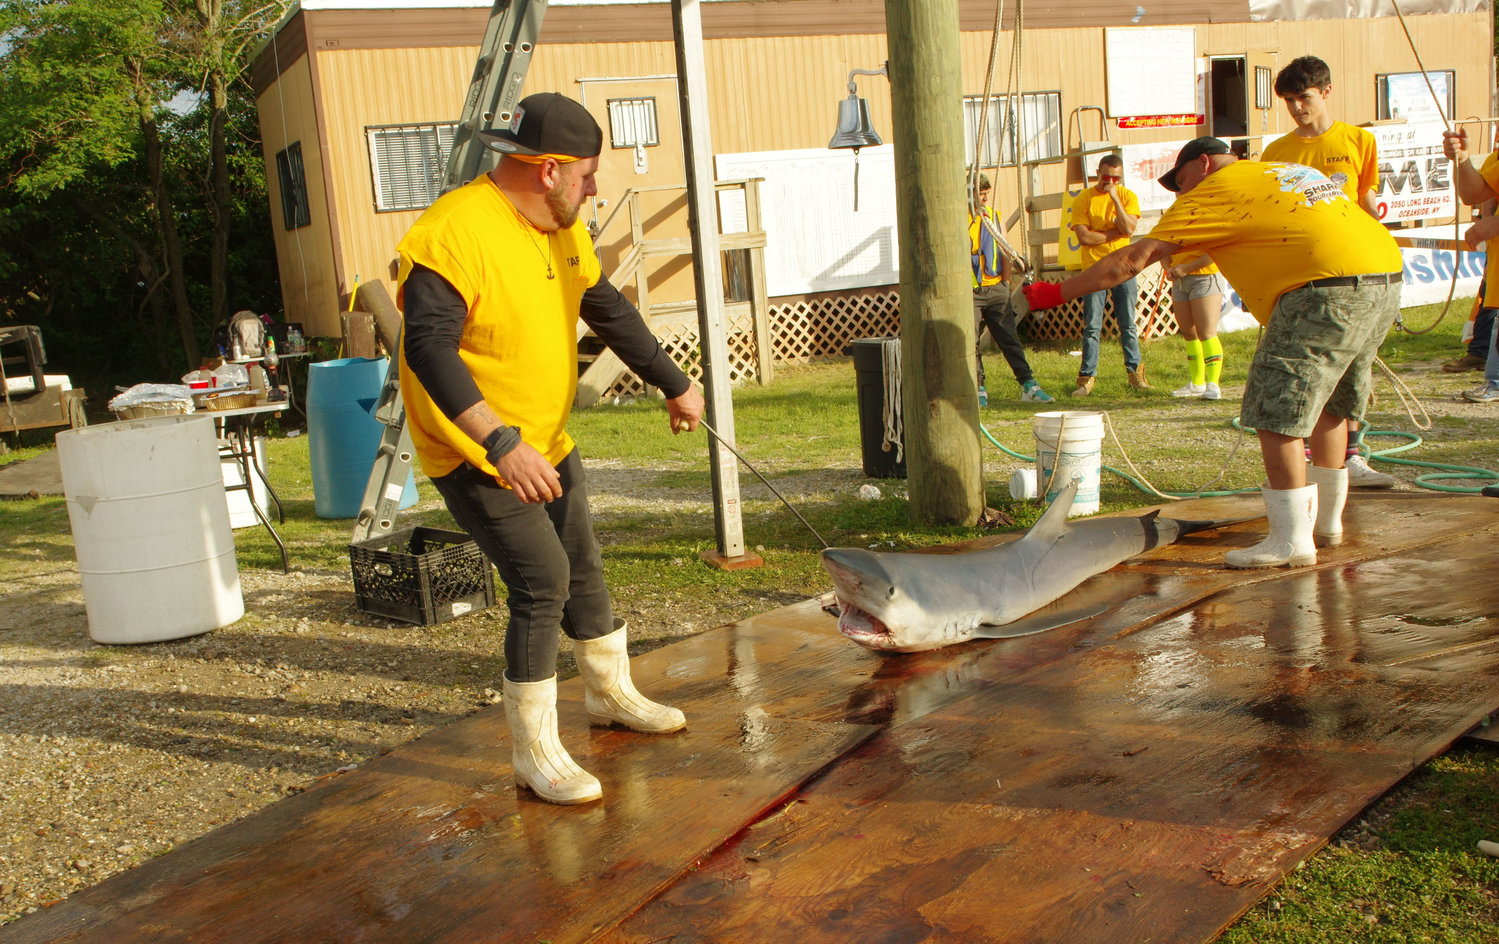 Each year, hundreds of fishermen and dozens of volunteers take part in the annual Freeport Hudson Anglers Shark Tournament at Guy Lombardo Marina. This year, the winning catch was a thresher shark that weighed in at nearly 300 pounds.